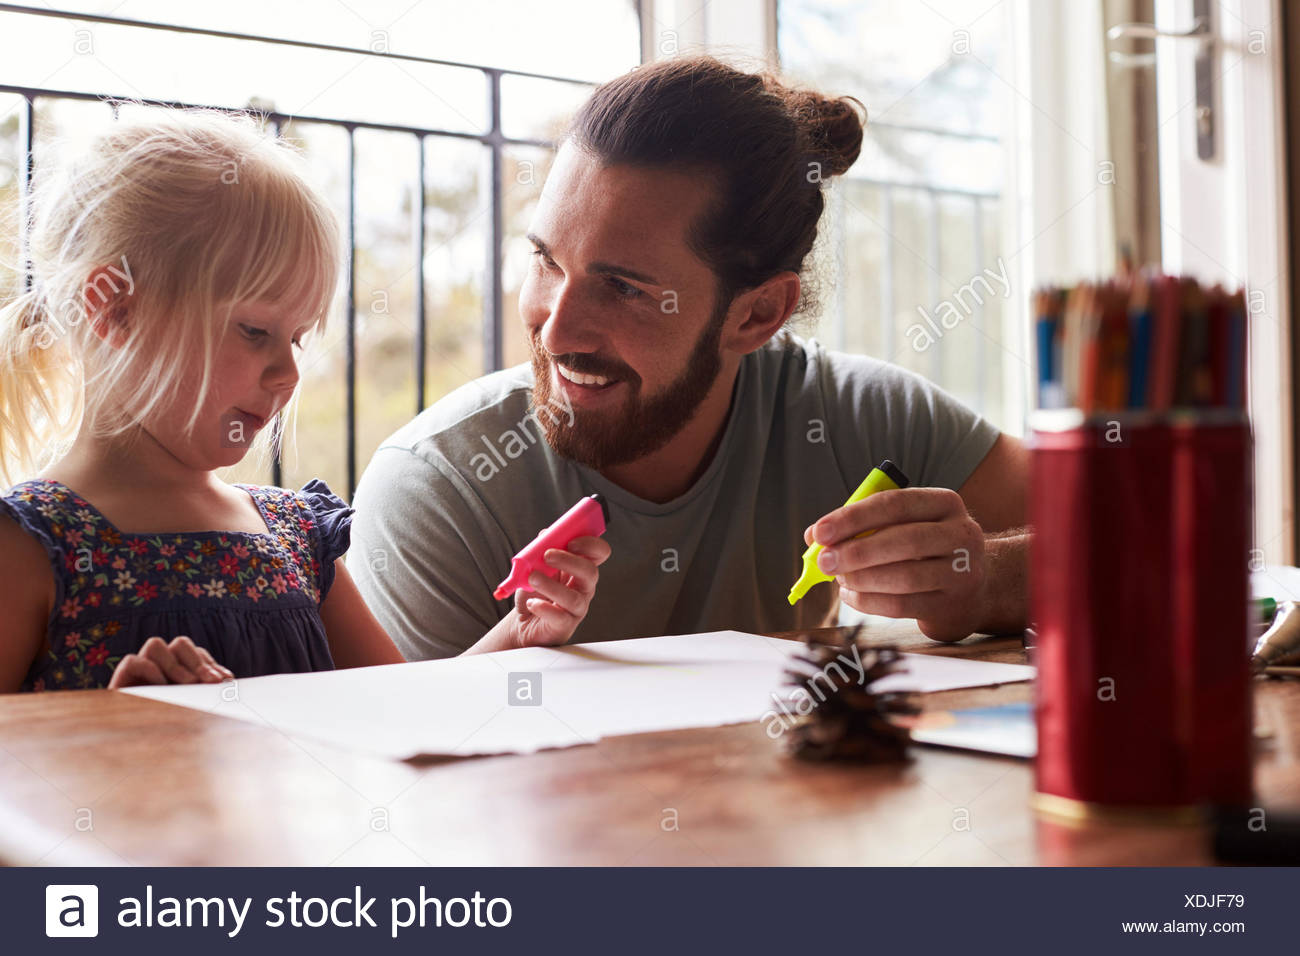 Father And Daughter Sitting At Table And Drawing Pictures - Stock Image